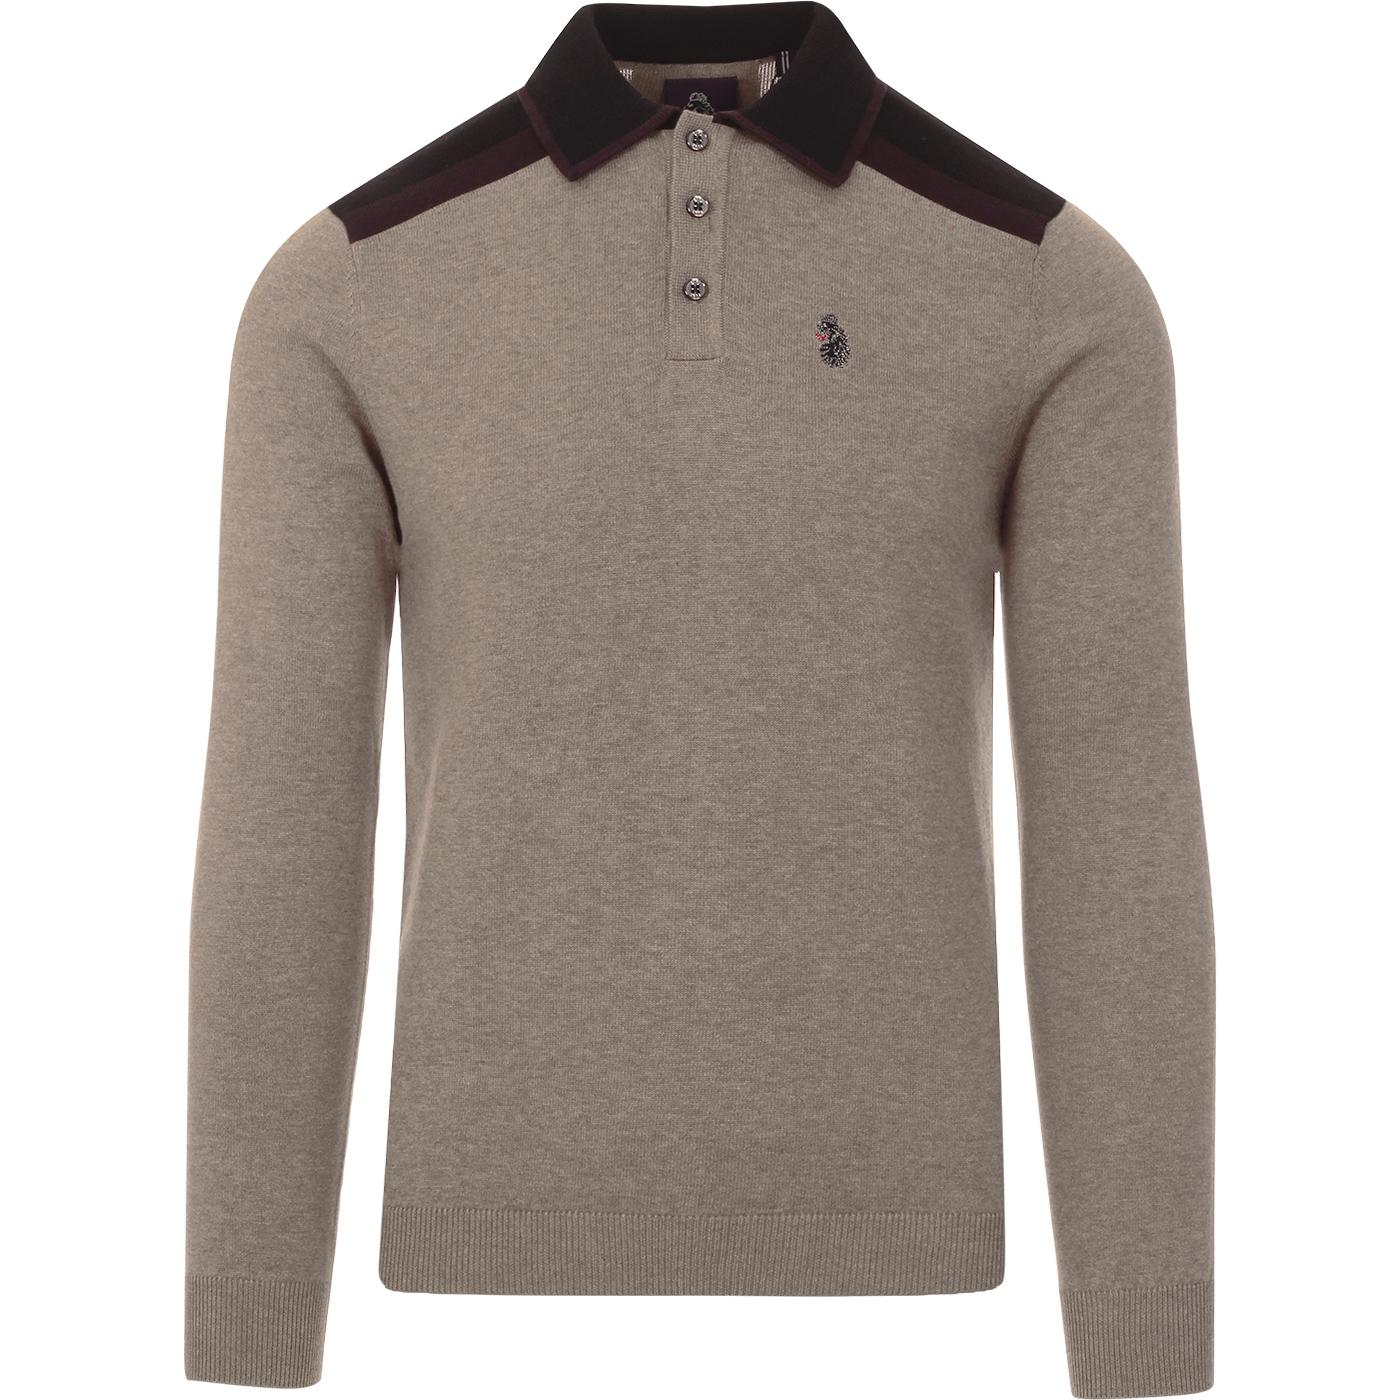 Oh Yeah Oh Yeah LUKE Retro Mod Knitted Polo (MO)